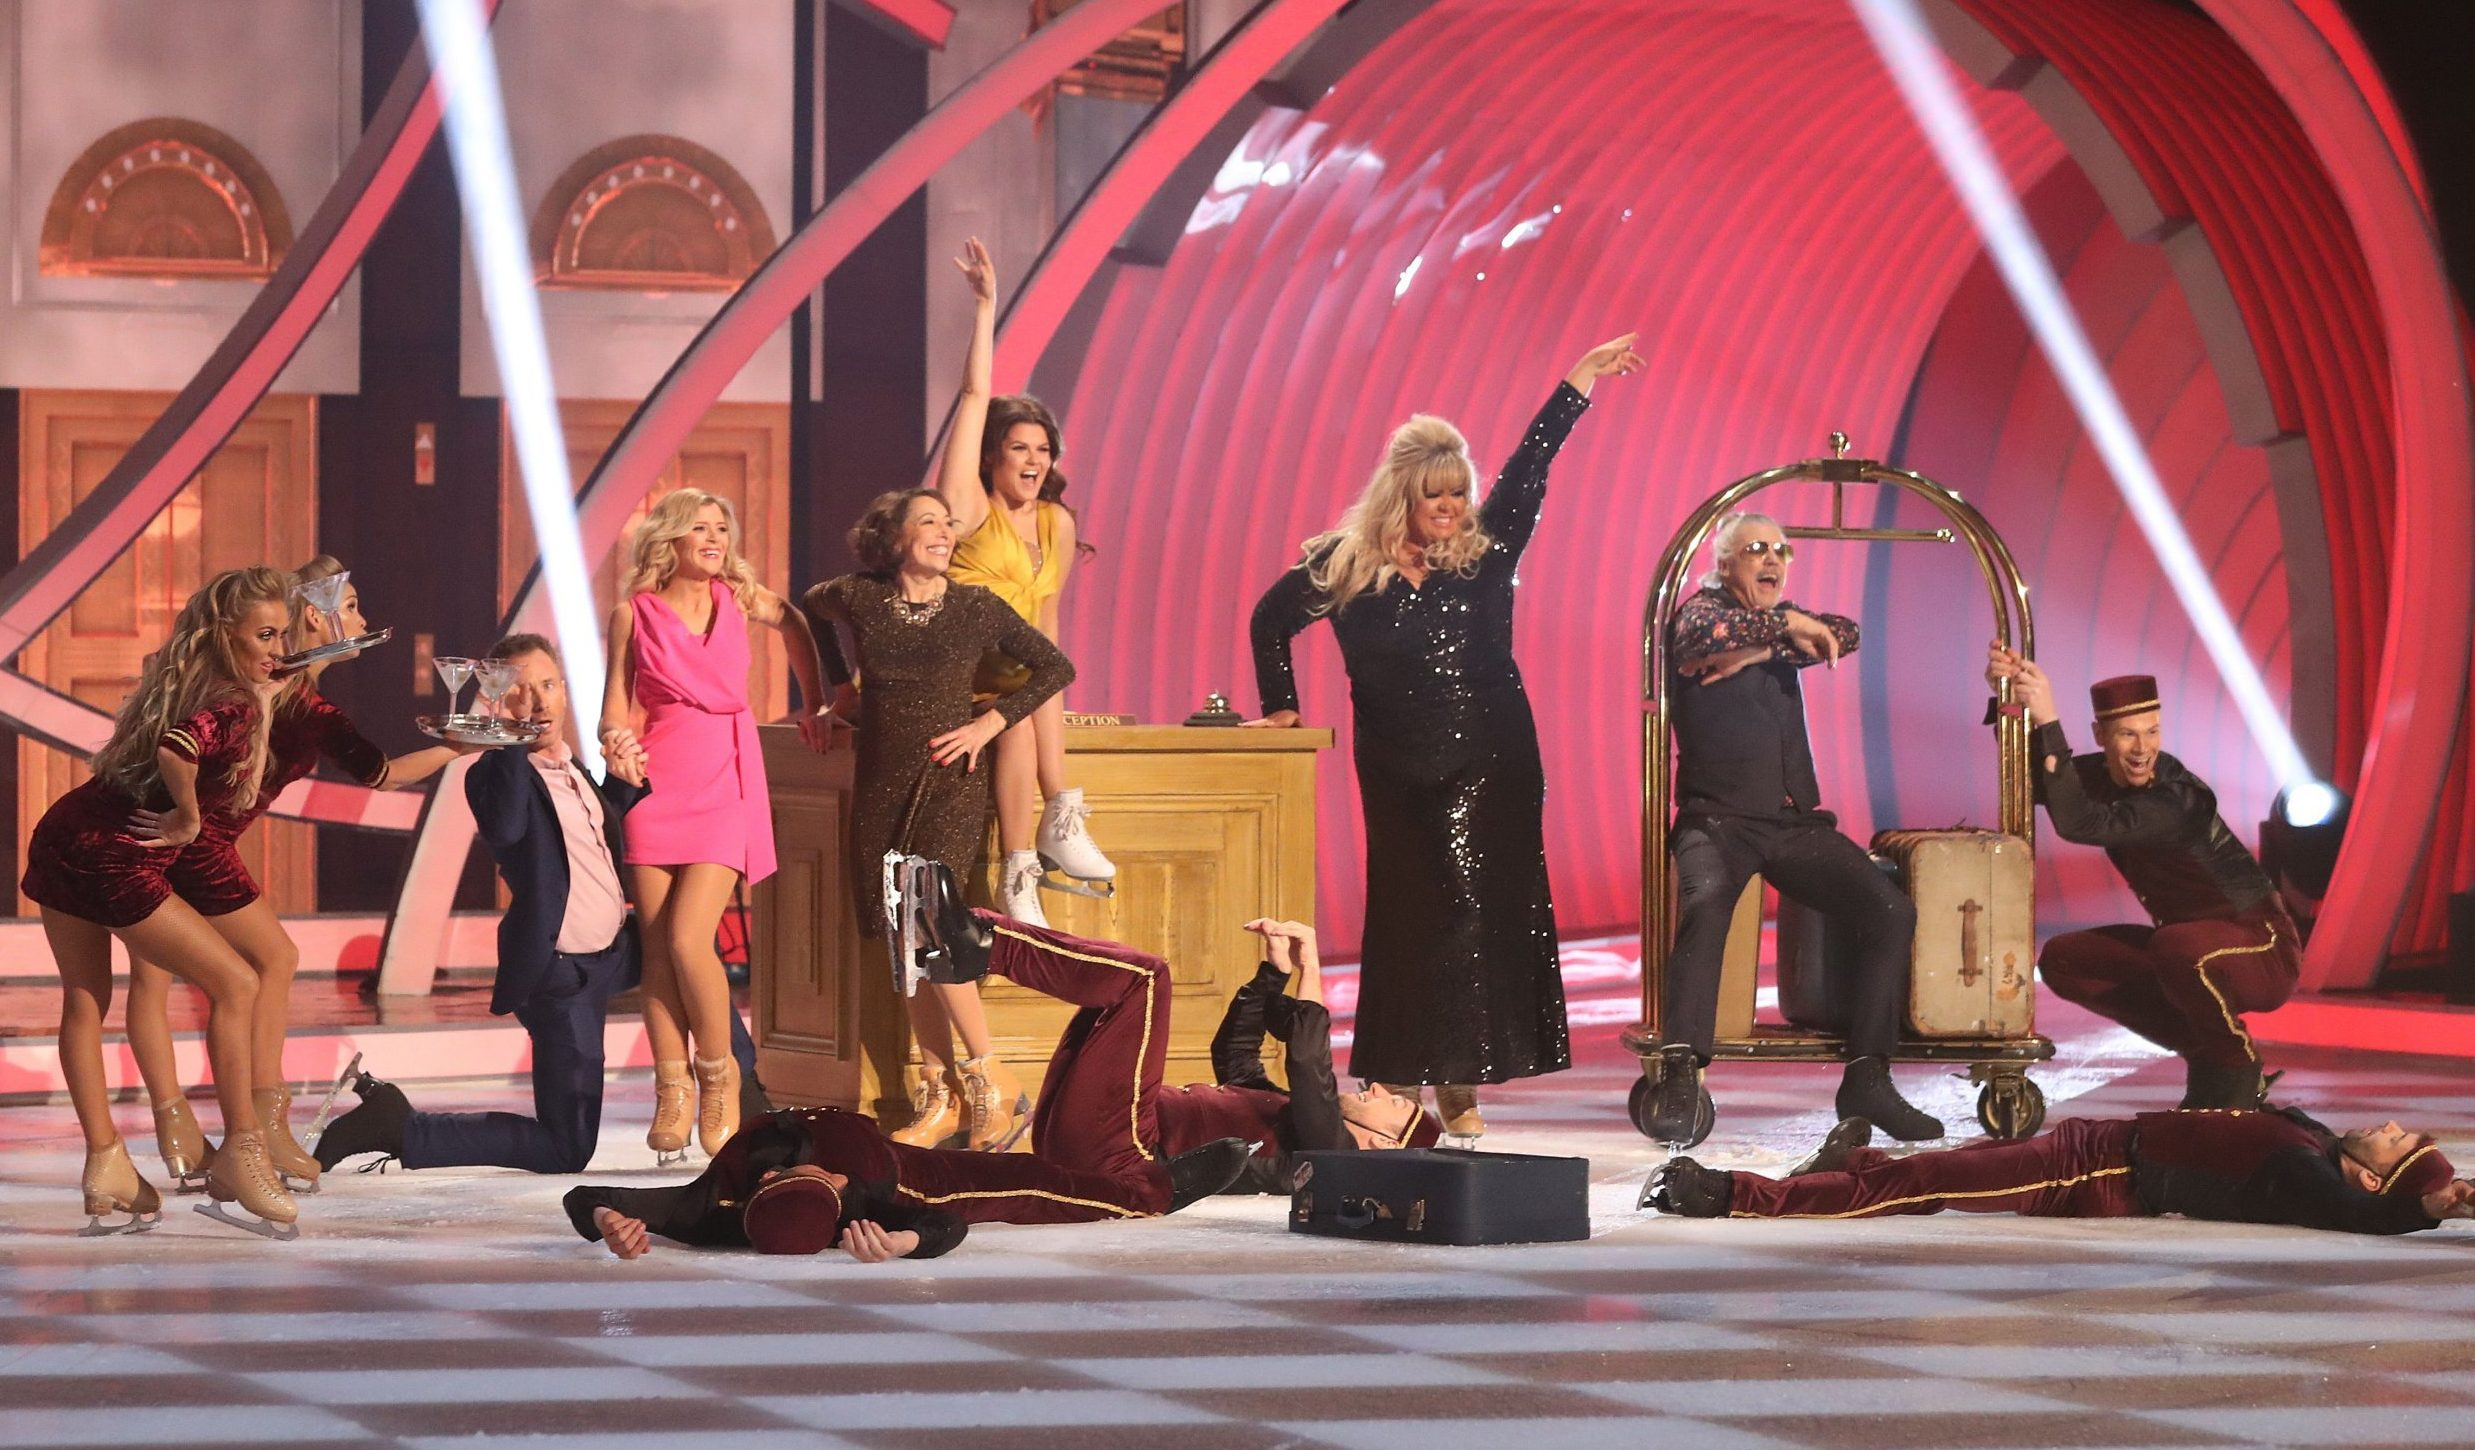 Gemma Collins leaves her Dancing On Ice co-stars waiting at rehearsals as she declares: 'I'm the GC, remember?'